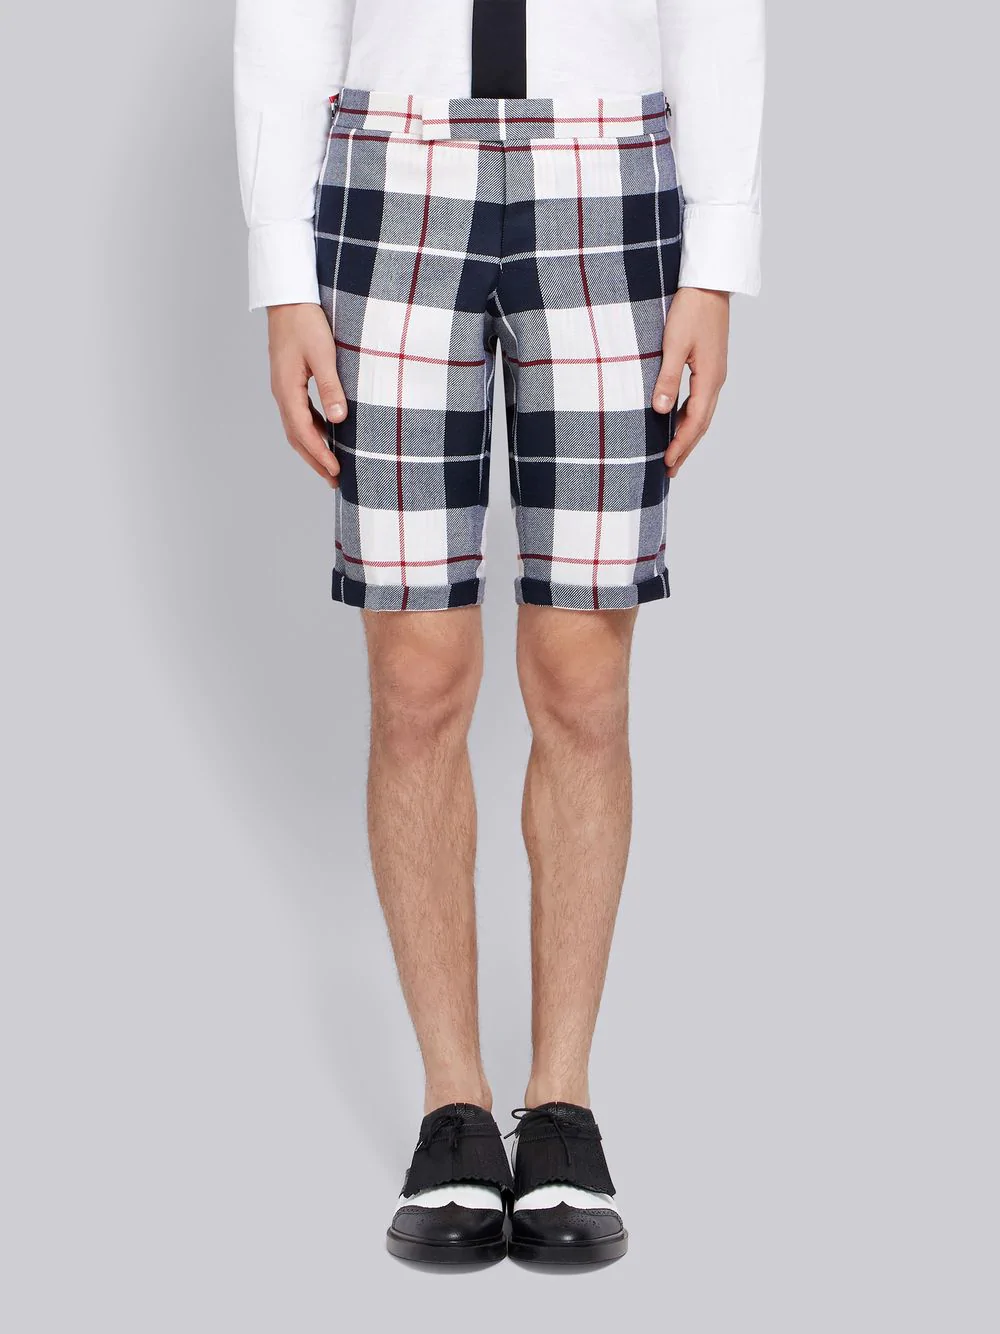 Thom Browne Buffalo Tartan Skinny Wool Short - Blue